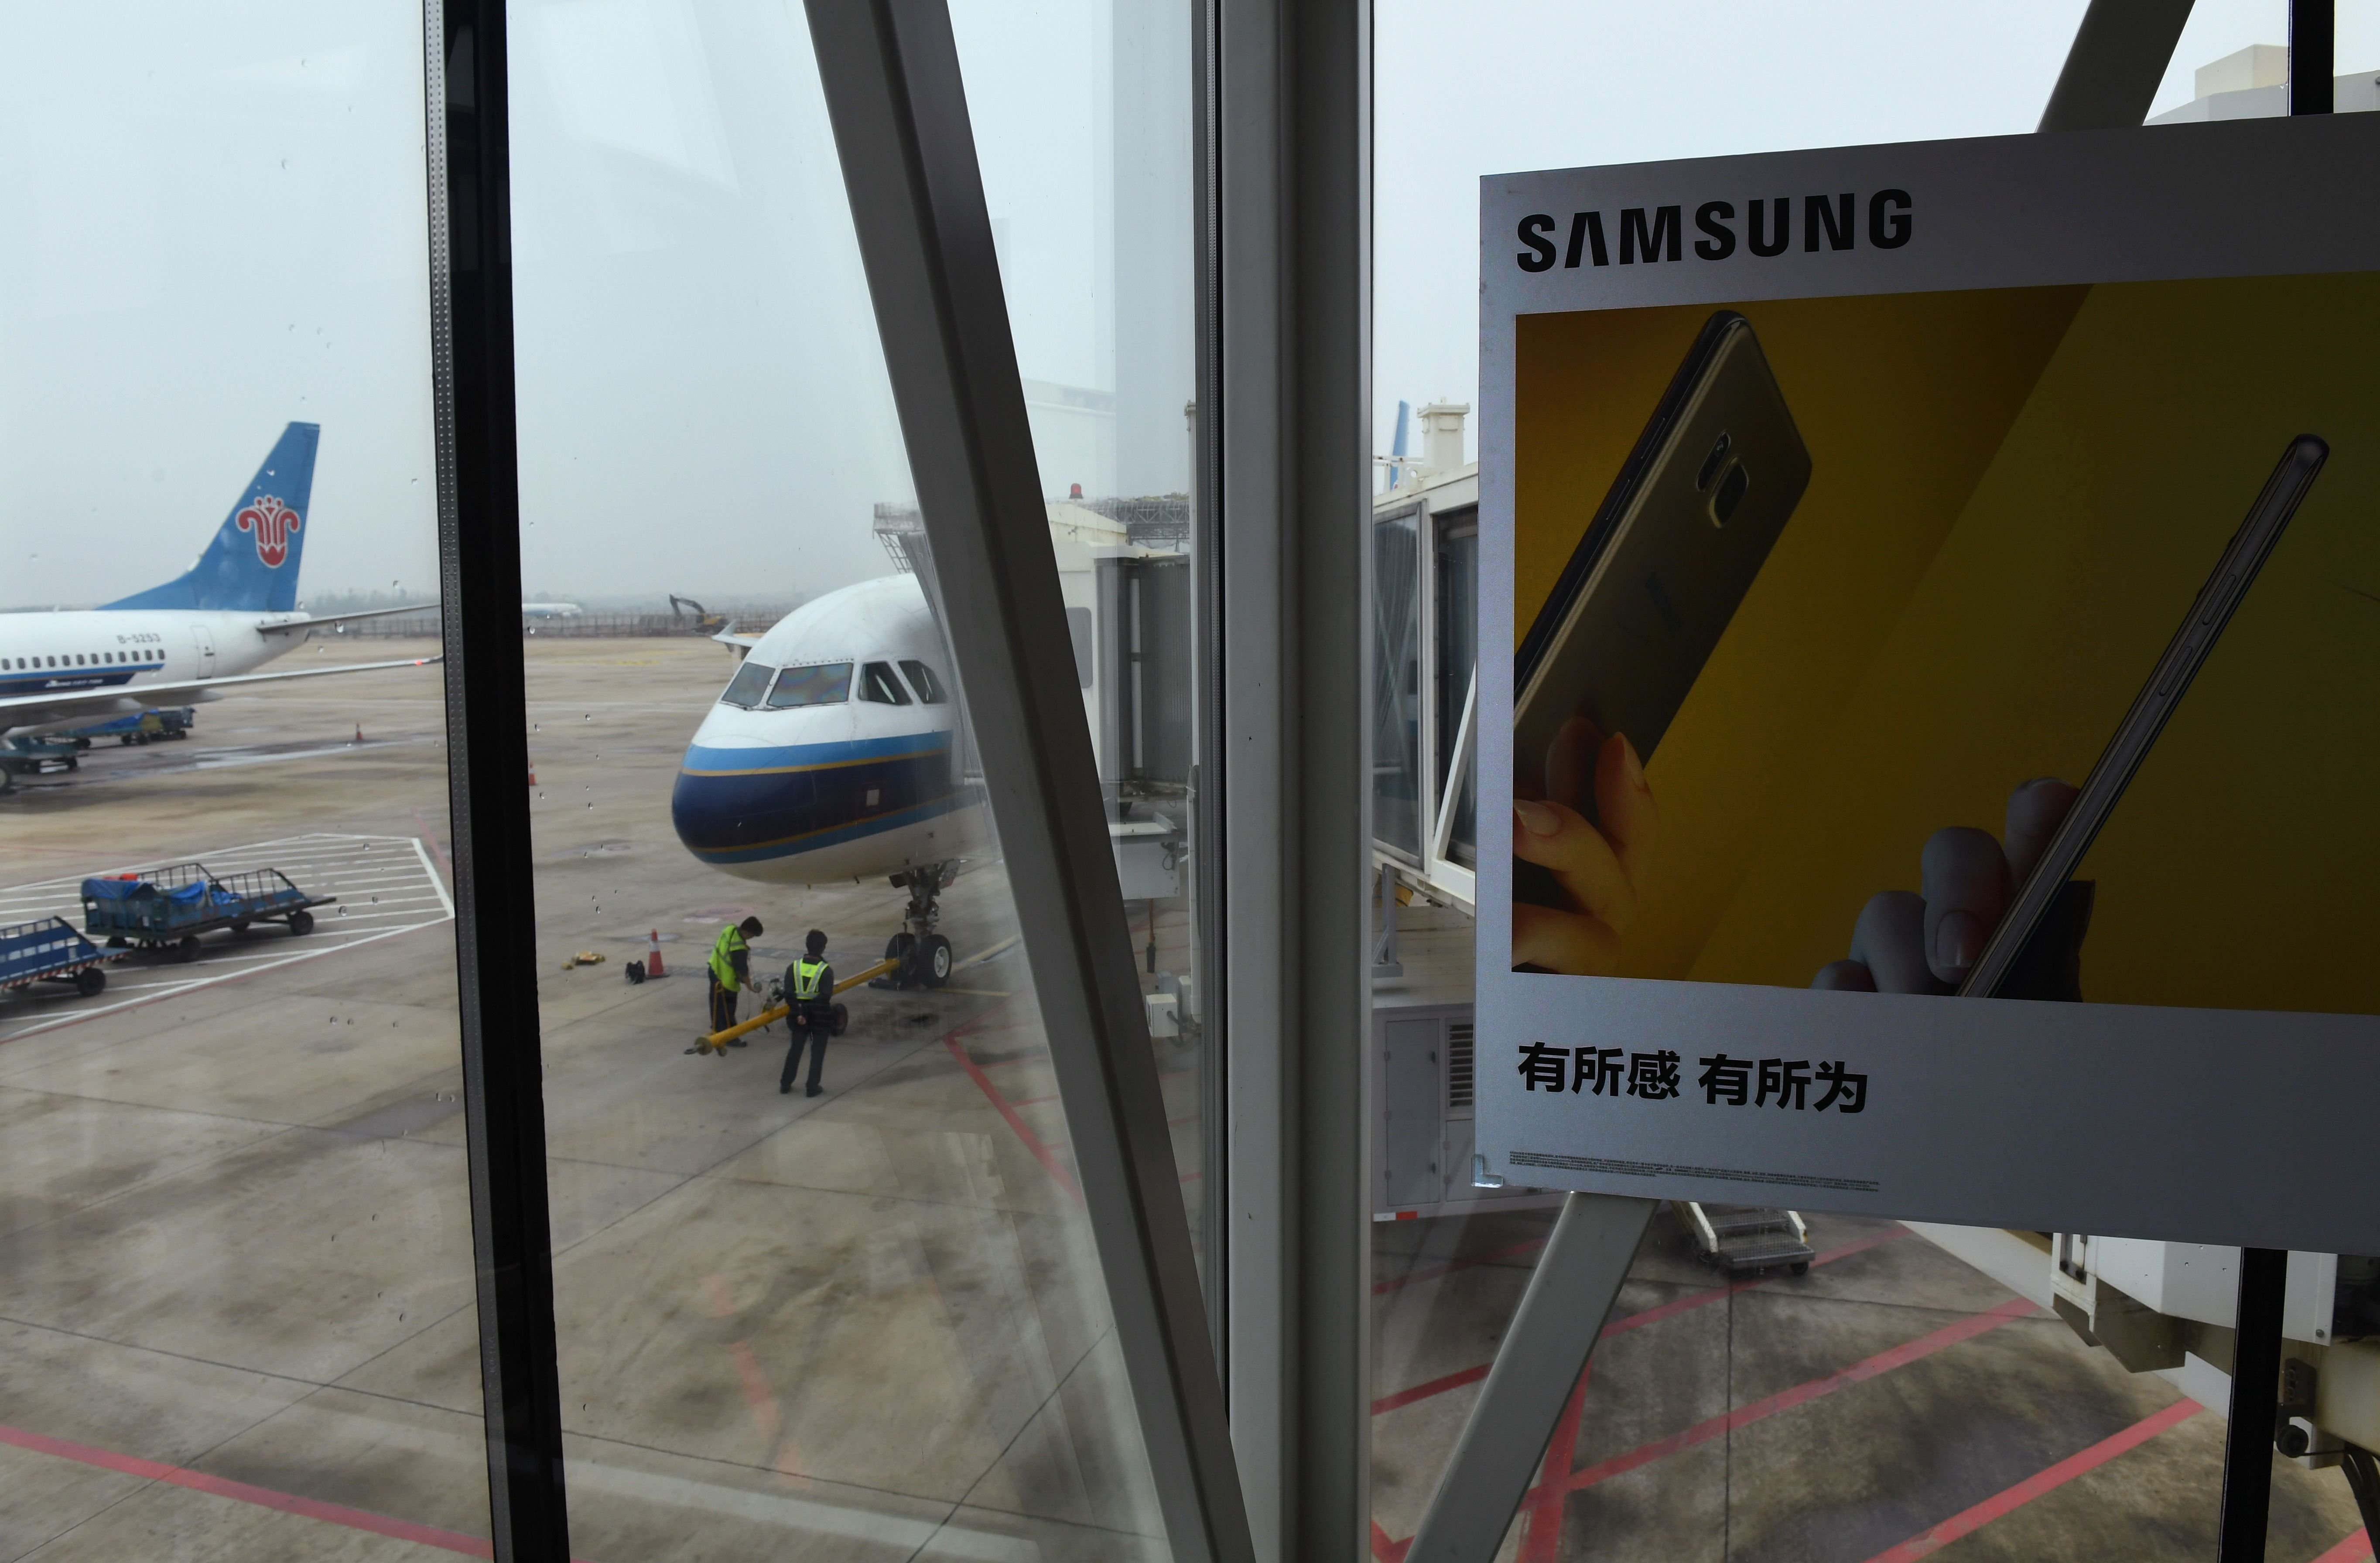 Signs at check-in counters warn passengers not to switch on or charge Note 7 smartphones on the plane and ban them from check-in luggage, following Samsung's recall of Note 7 phones after cases of batteries catching fire were reported in the US, at the Wuhan airport in China, on Oct. 2, 2016.